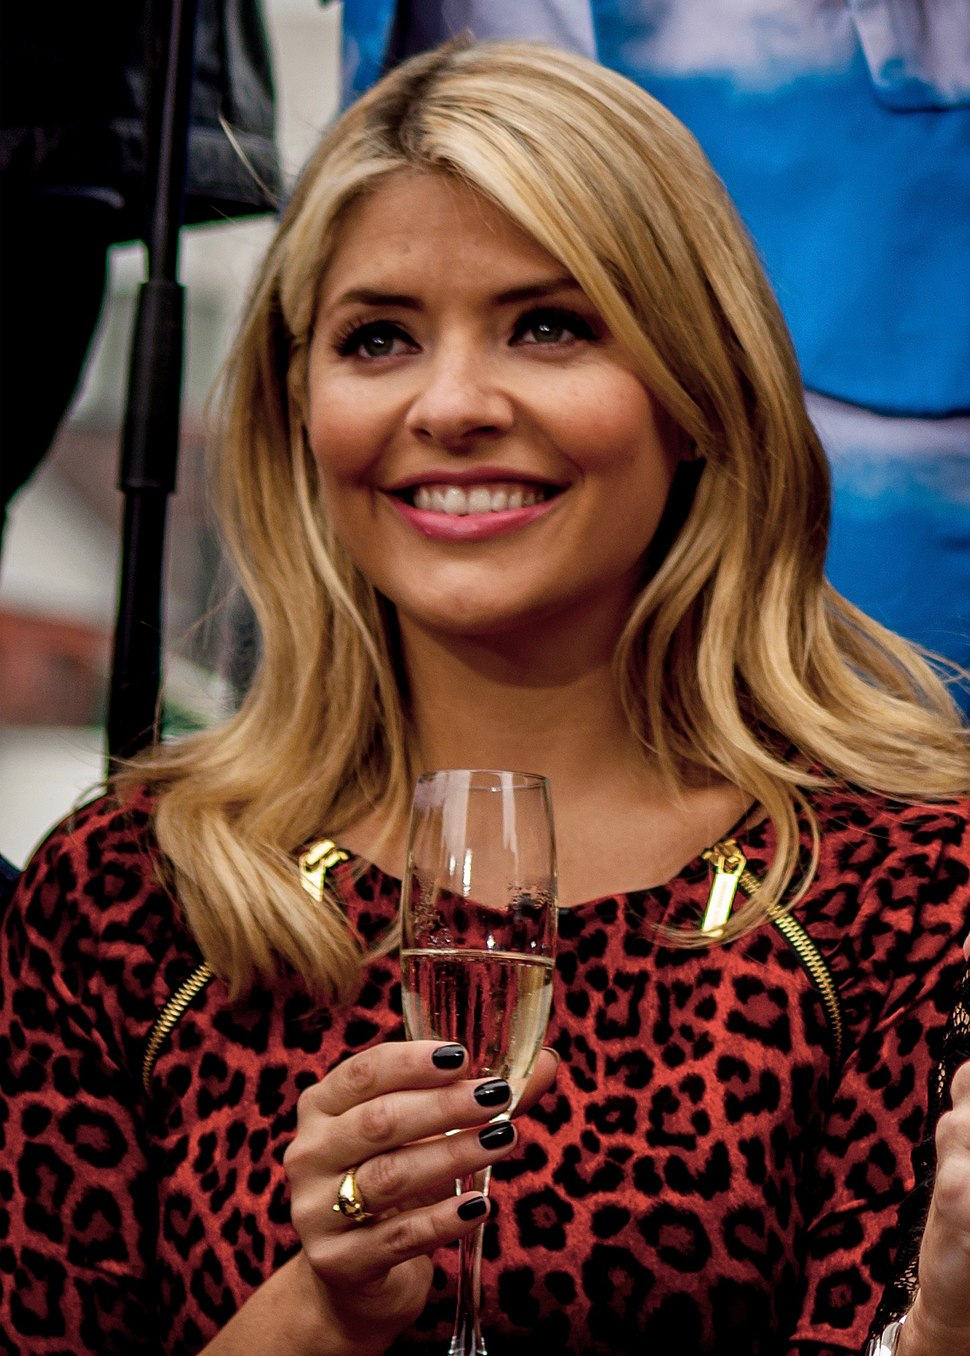 Holly Willoughby (cropped)